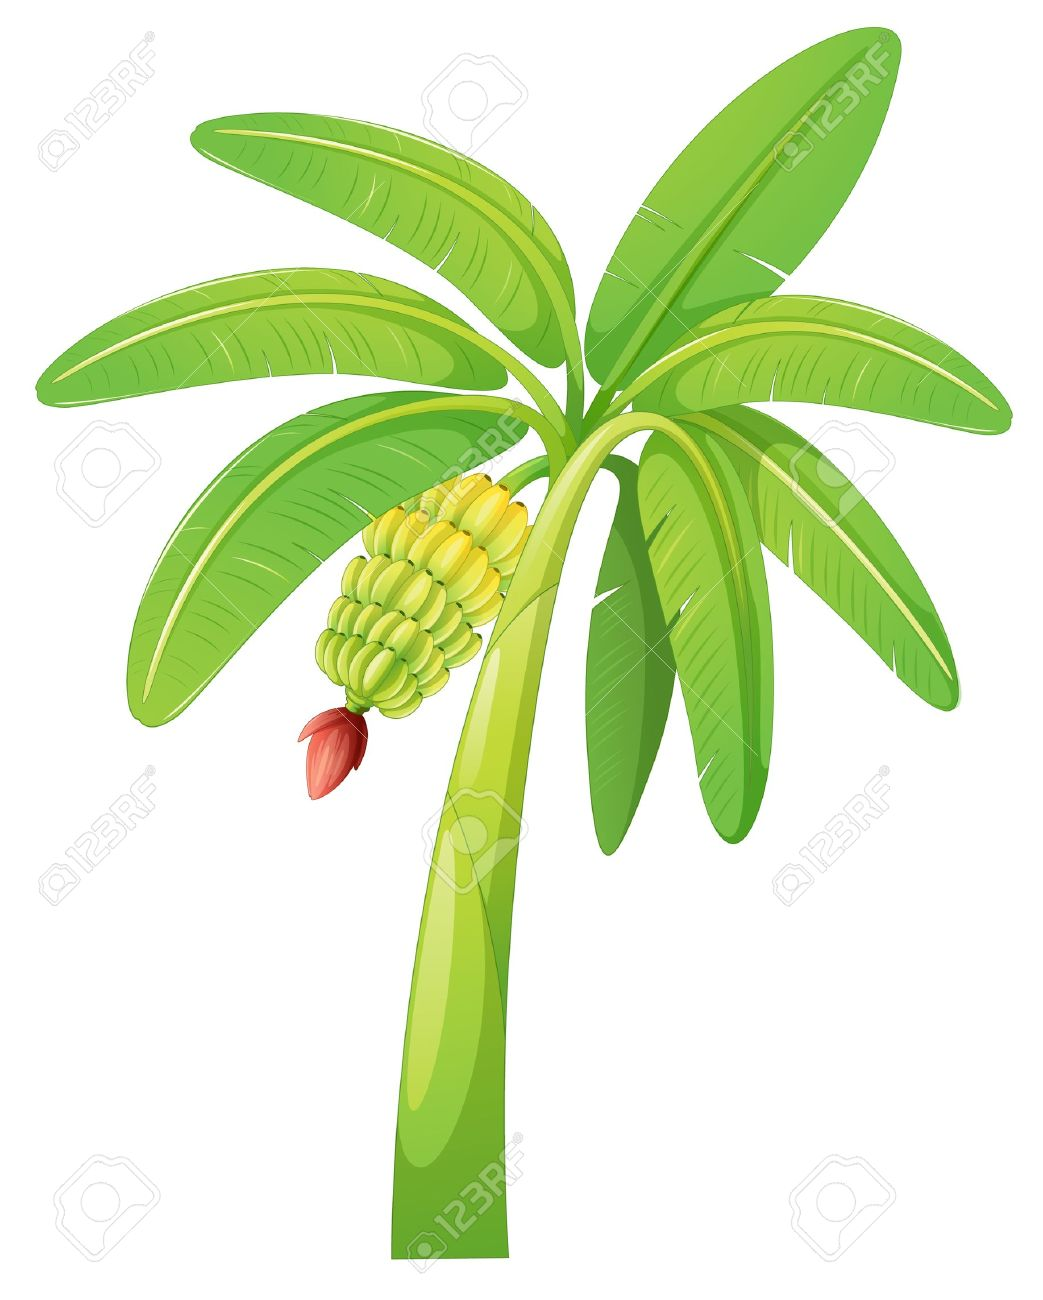 Illustration Of Banana Tree On A White Background Royalty Free Cliparts Vectors And Stock Illustration Image 14764759